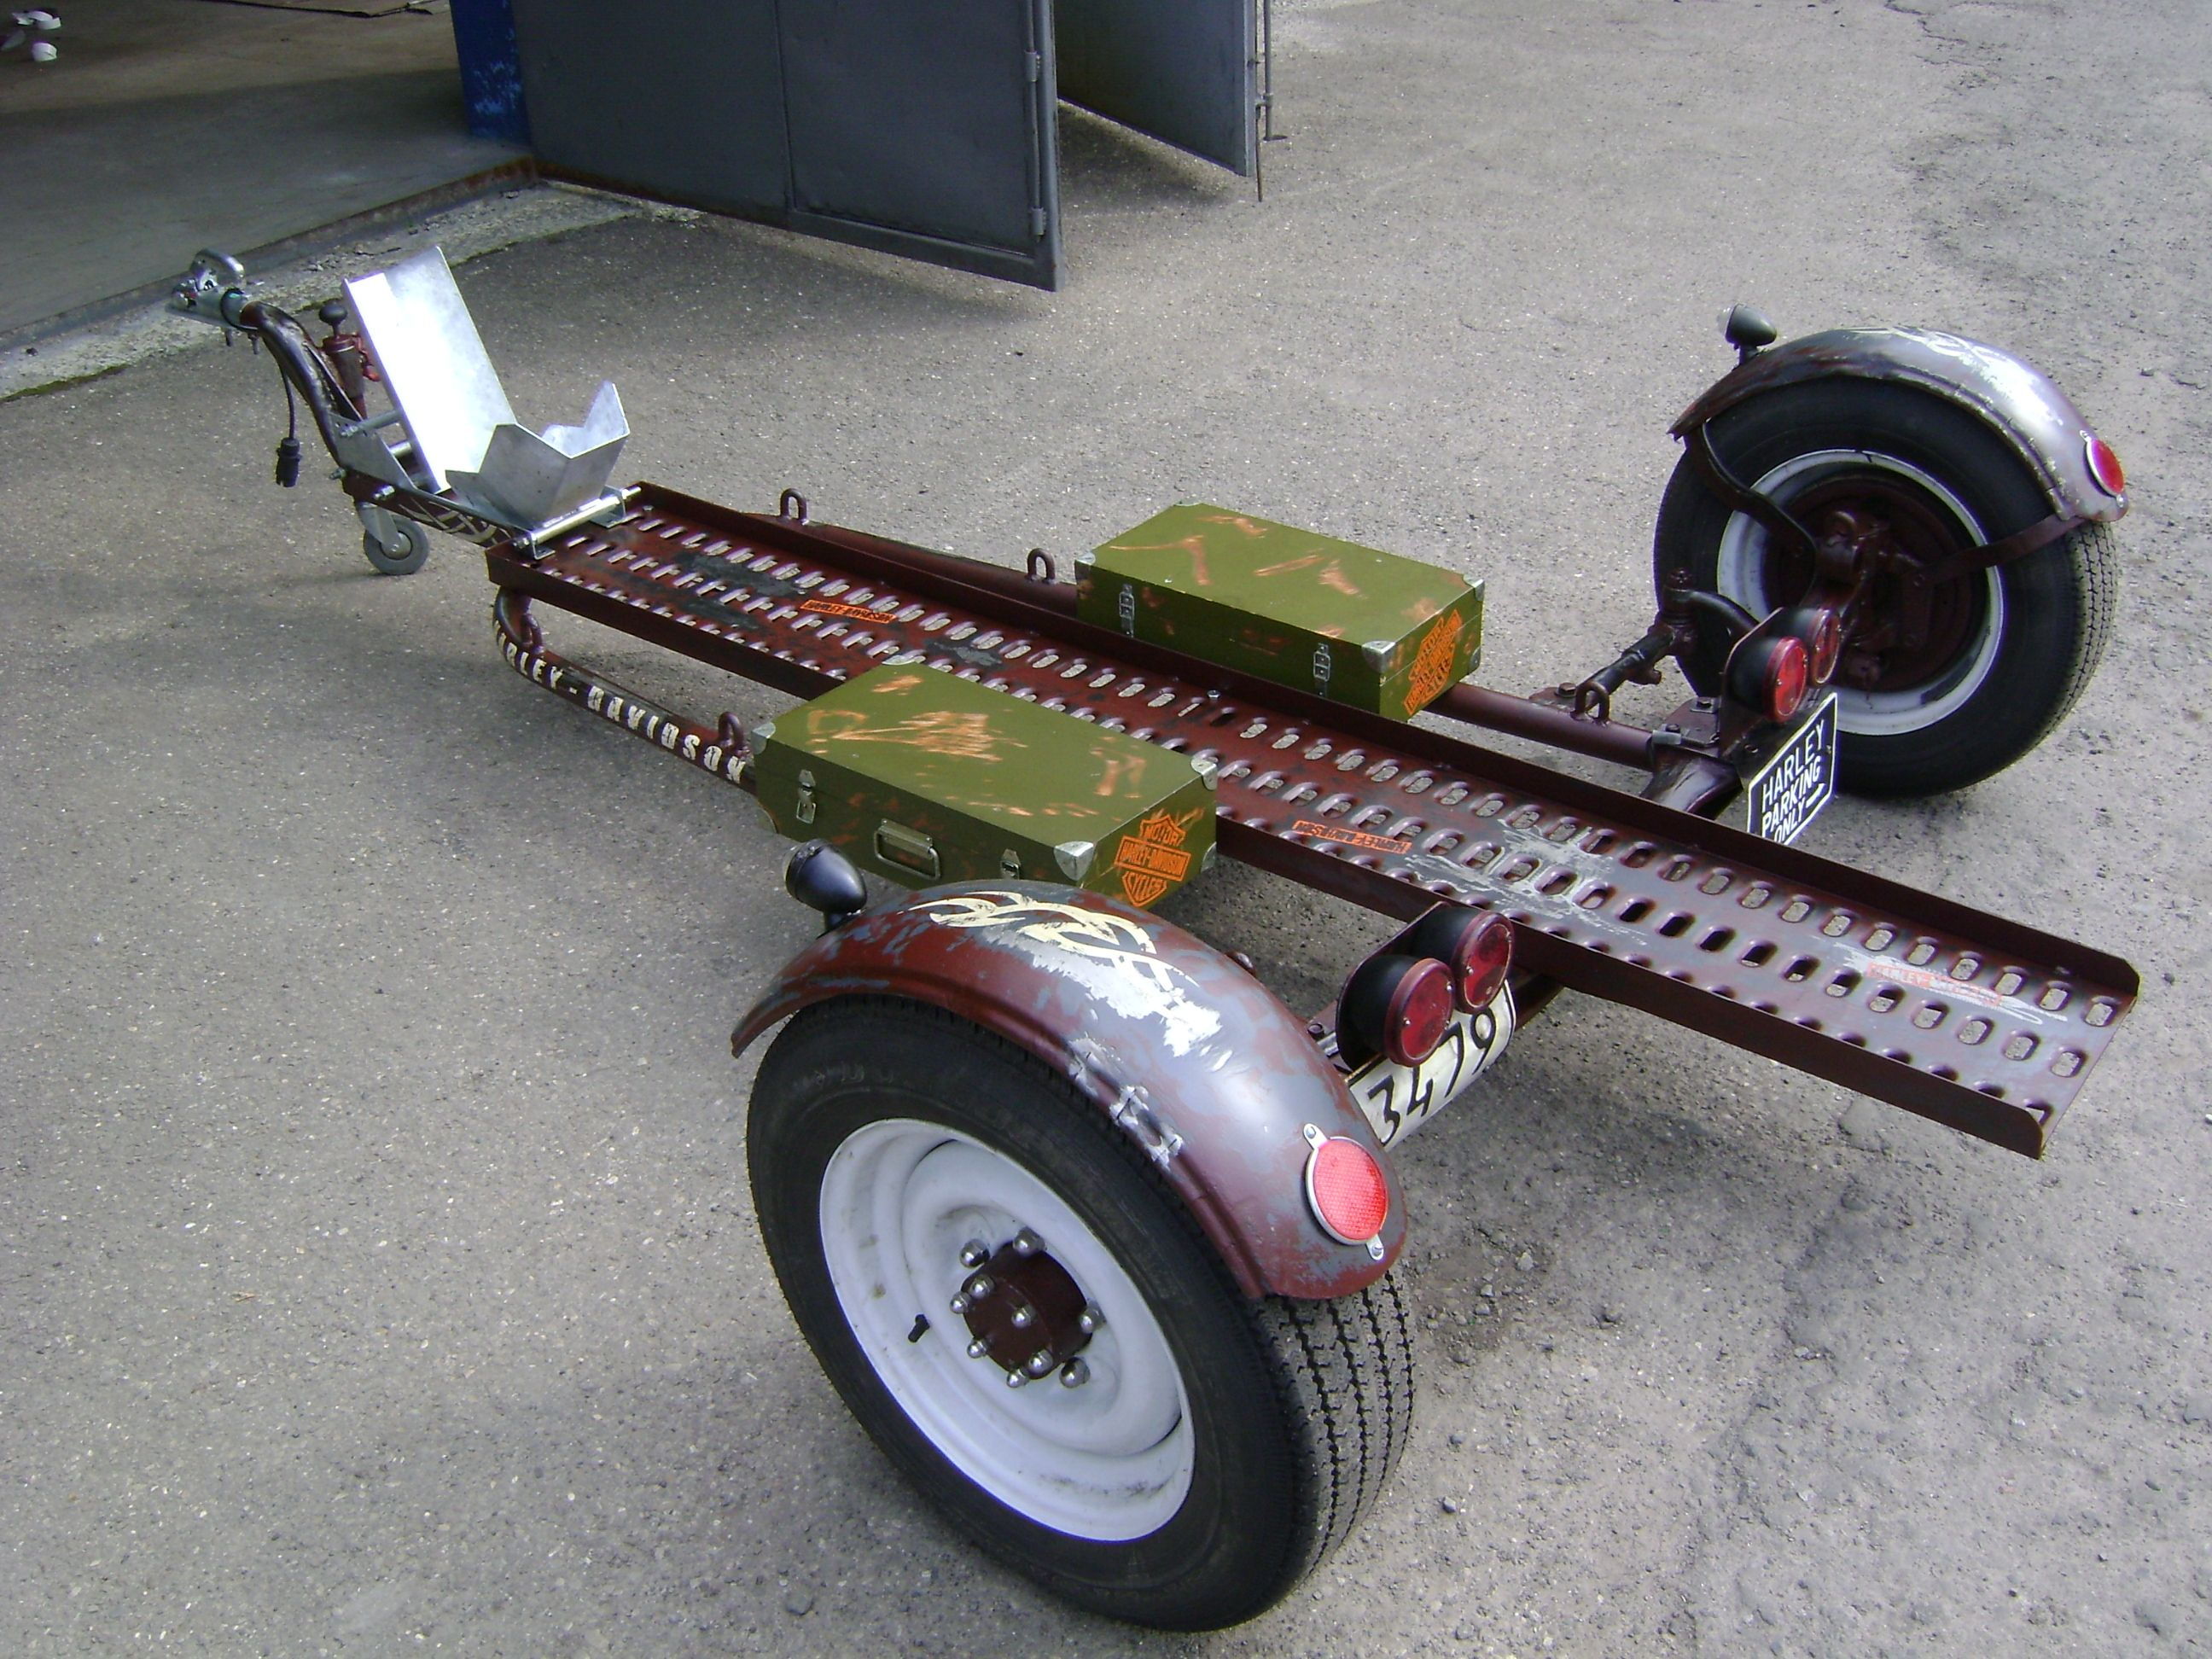 Pin By Manius67 On Fabrication Motorcycle Trailer Car Trailer Bike Transporting